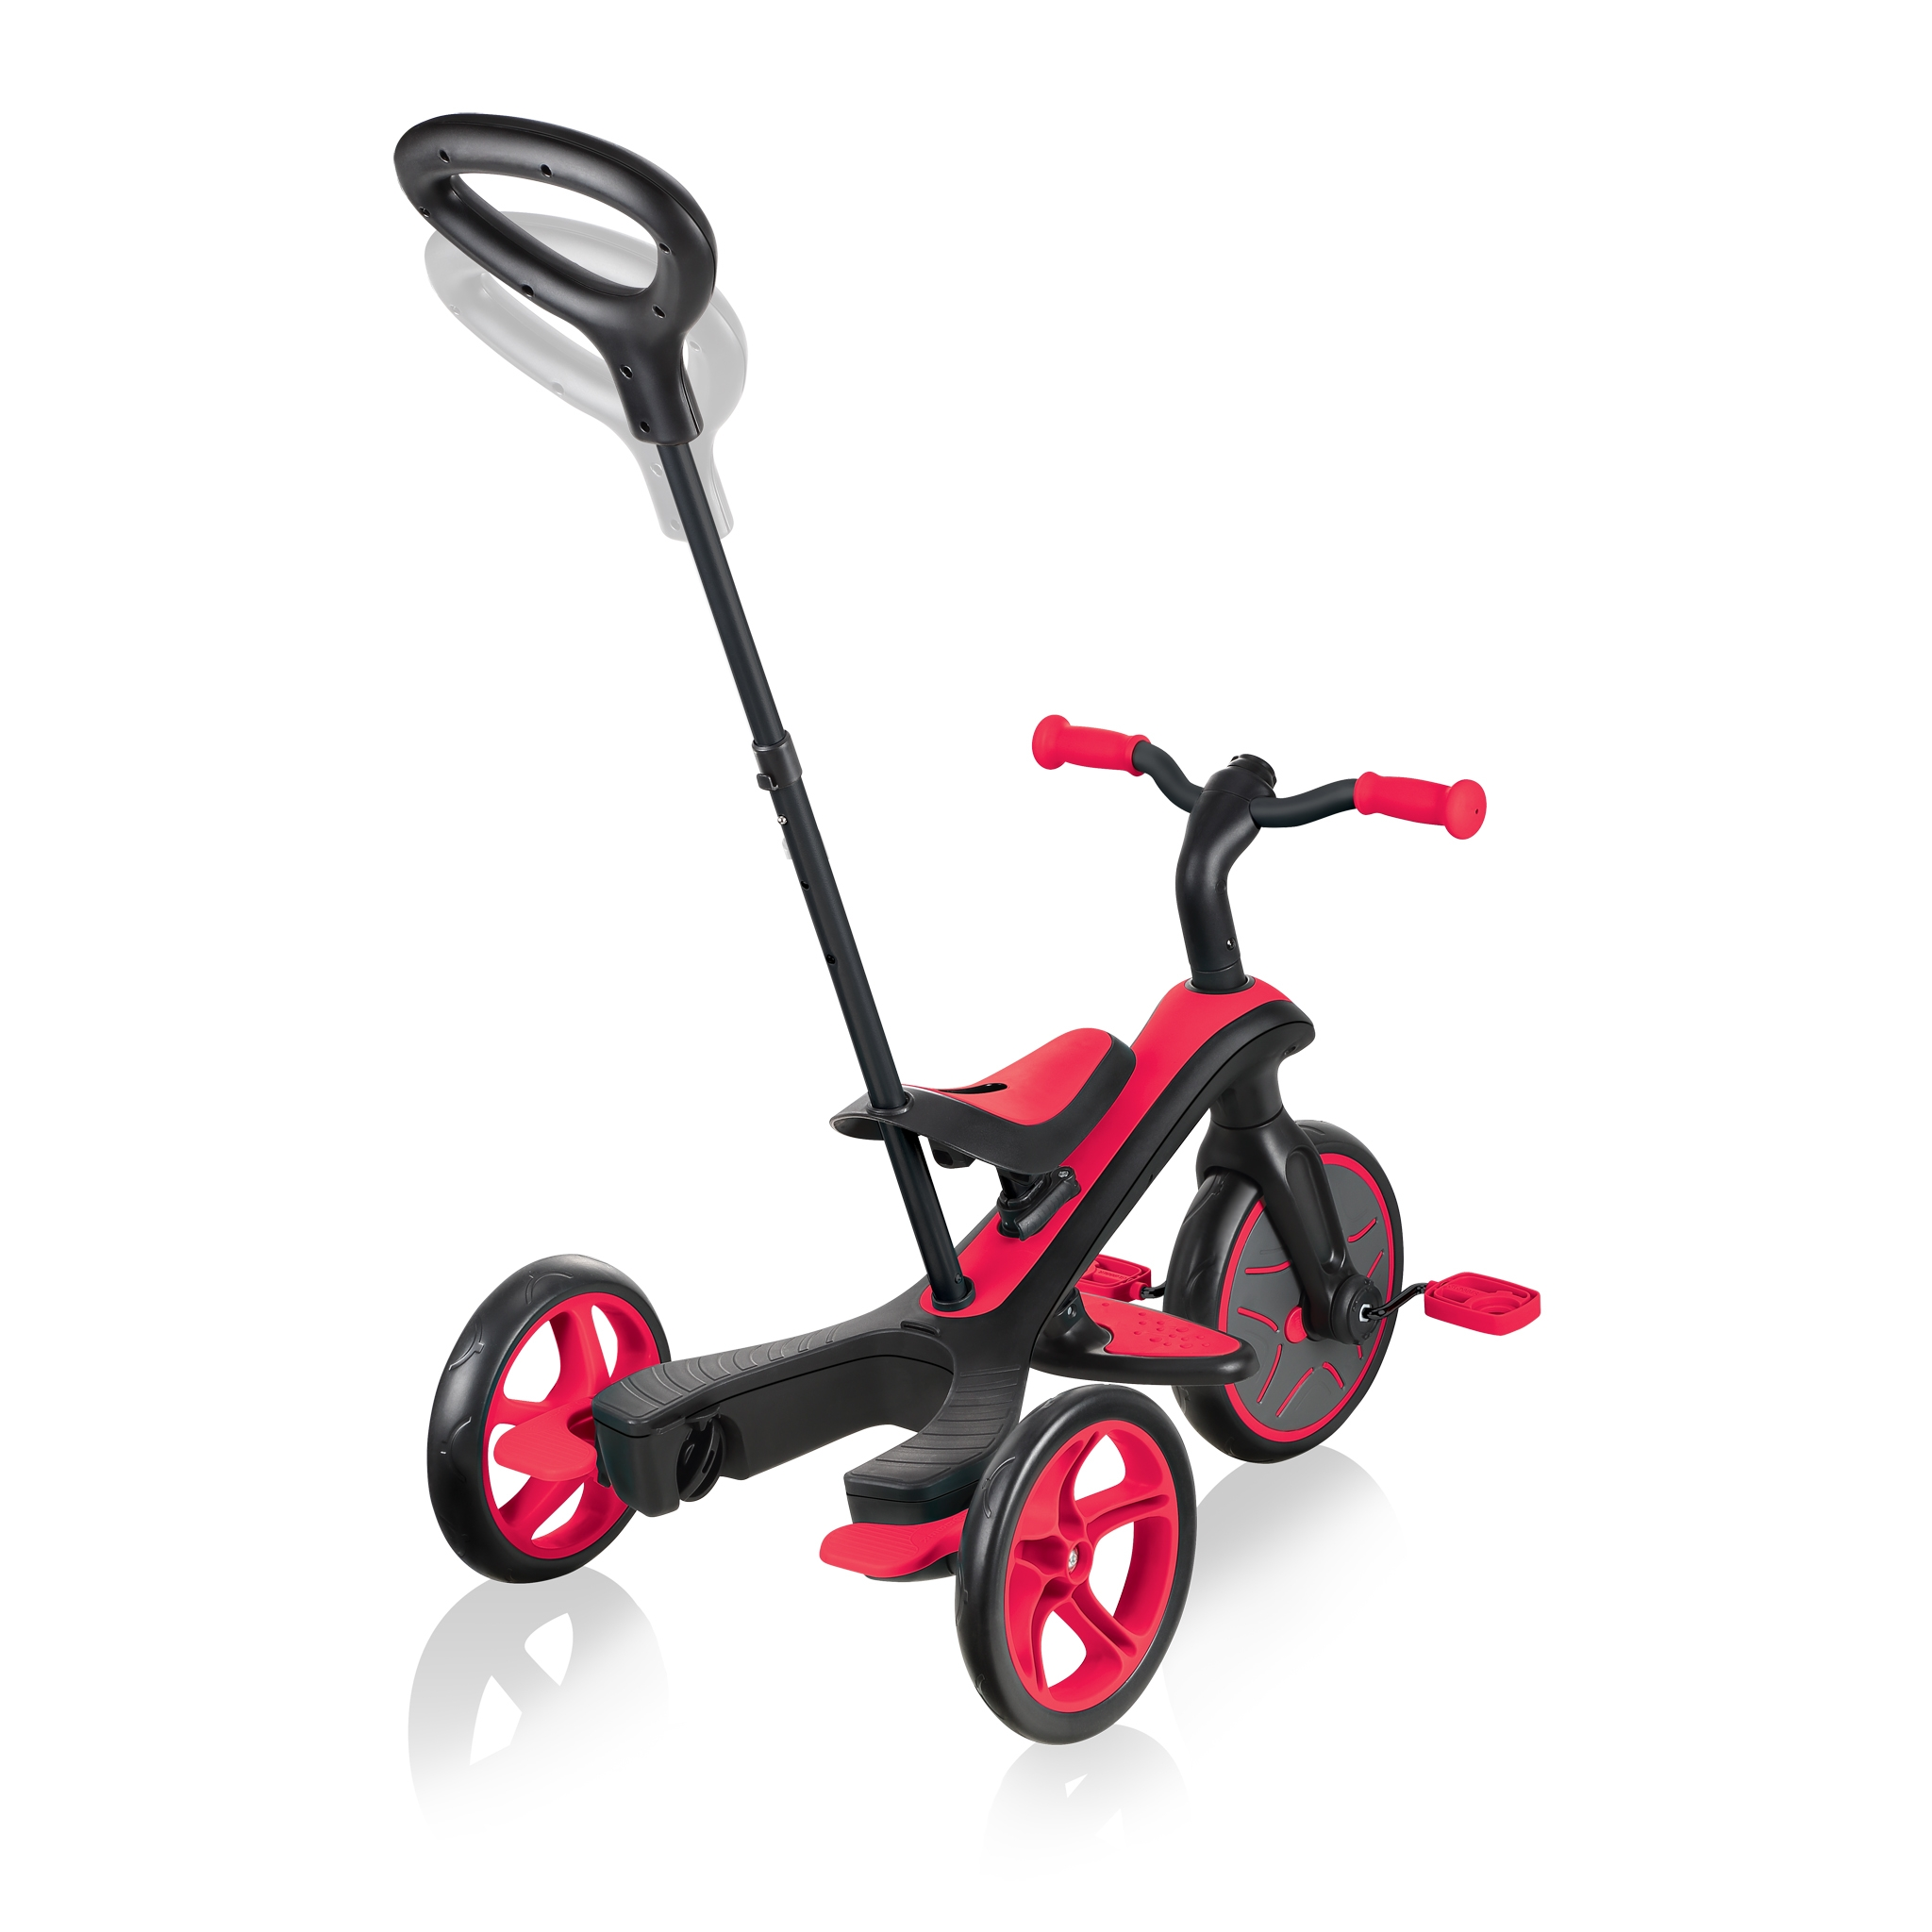 Globber-EXPLORER-TRIKE-3in1-all-in-one-baby-tricycle-and-kids-balance-bike-with-2-height-adjustable-parent-handle_new-red